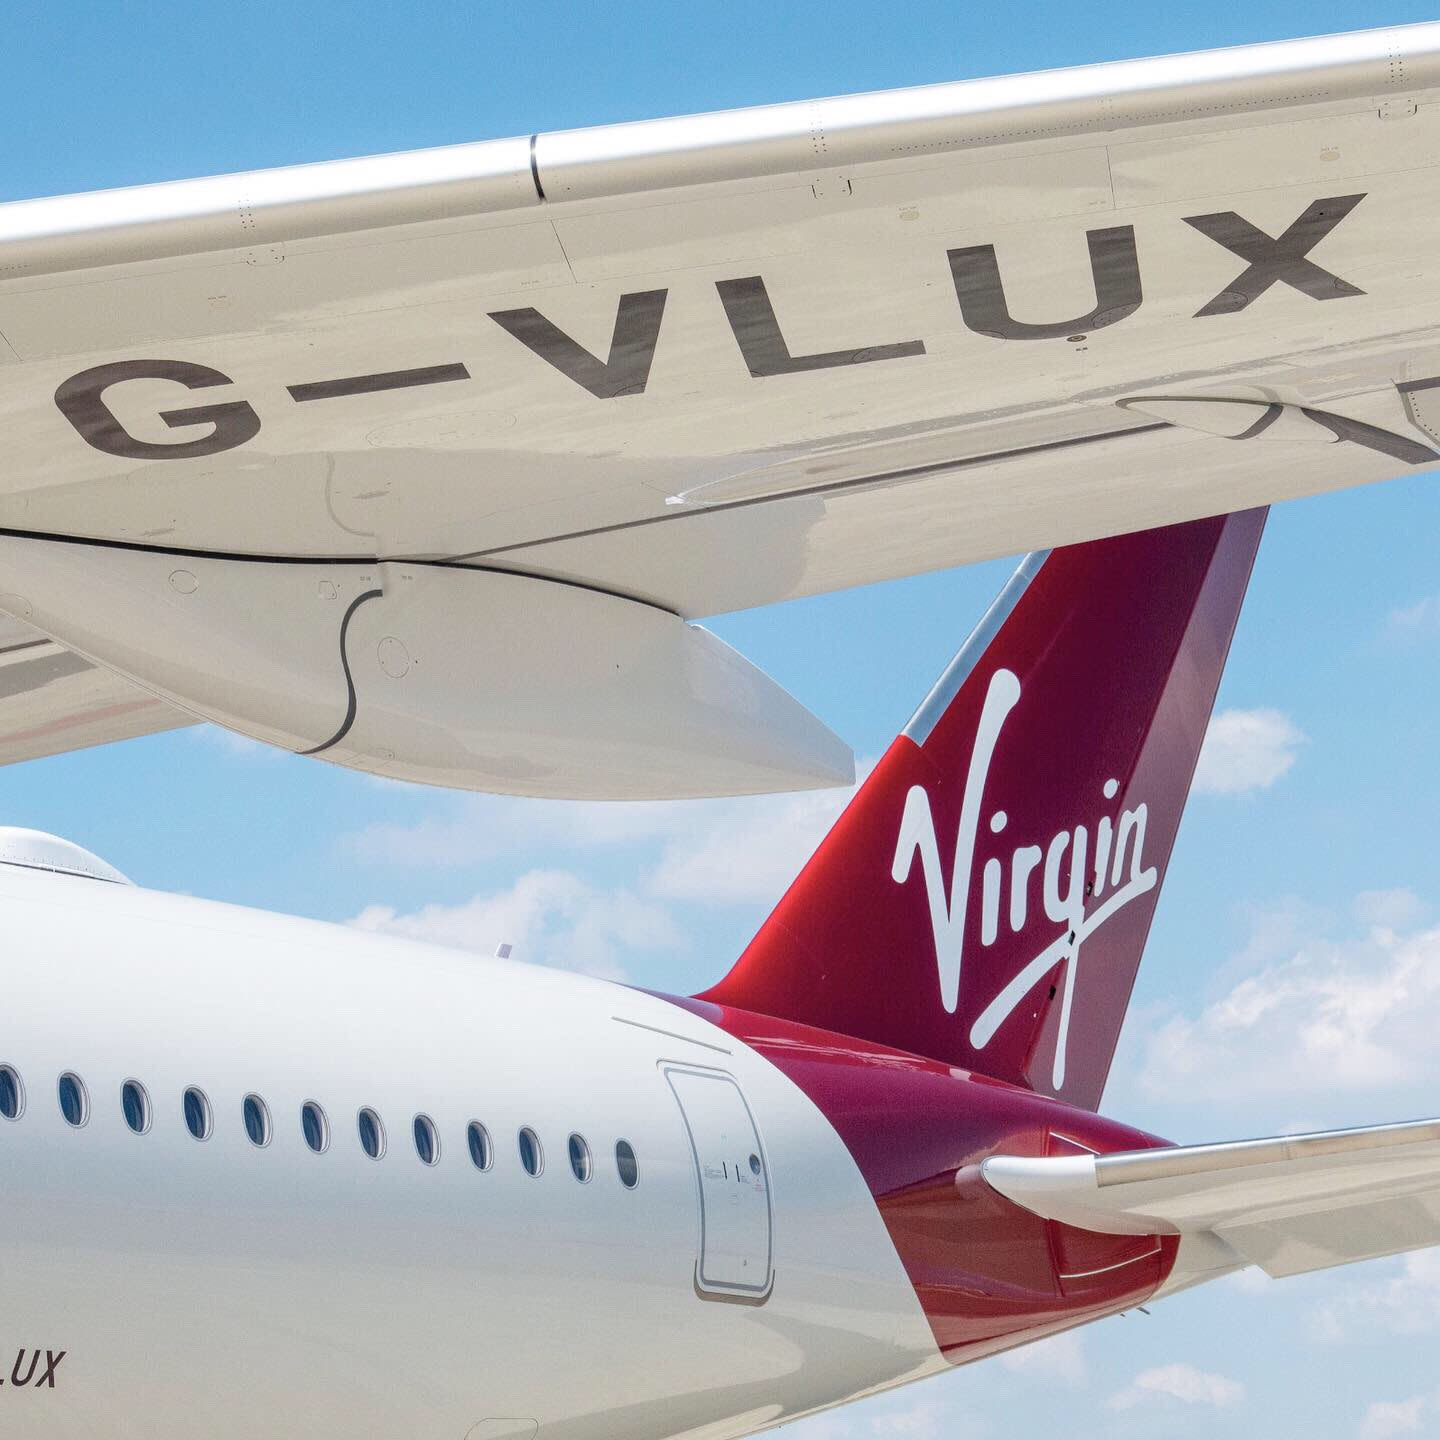 The tail fin and underwing of Virgin Atlantic's Airbus A350 G-VLUX